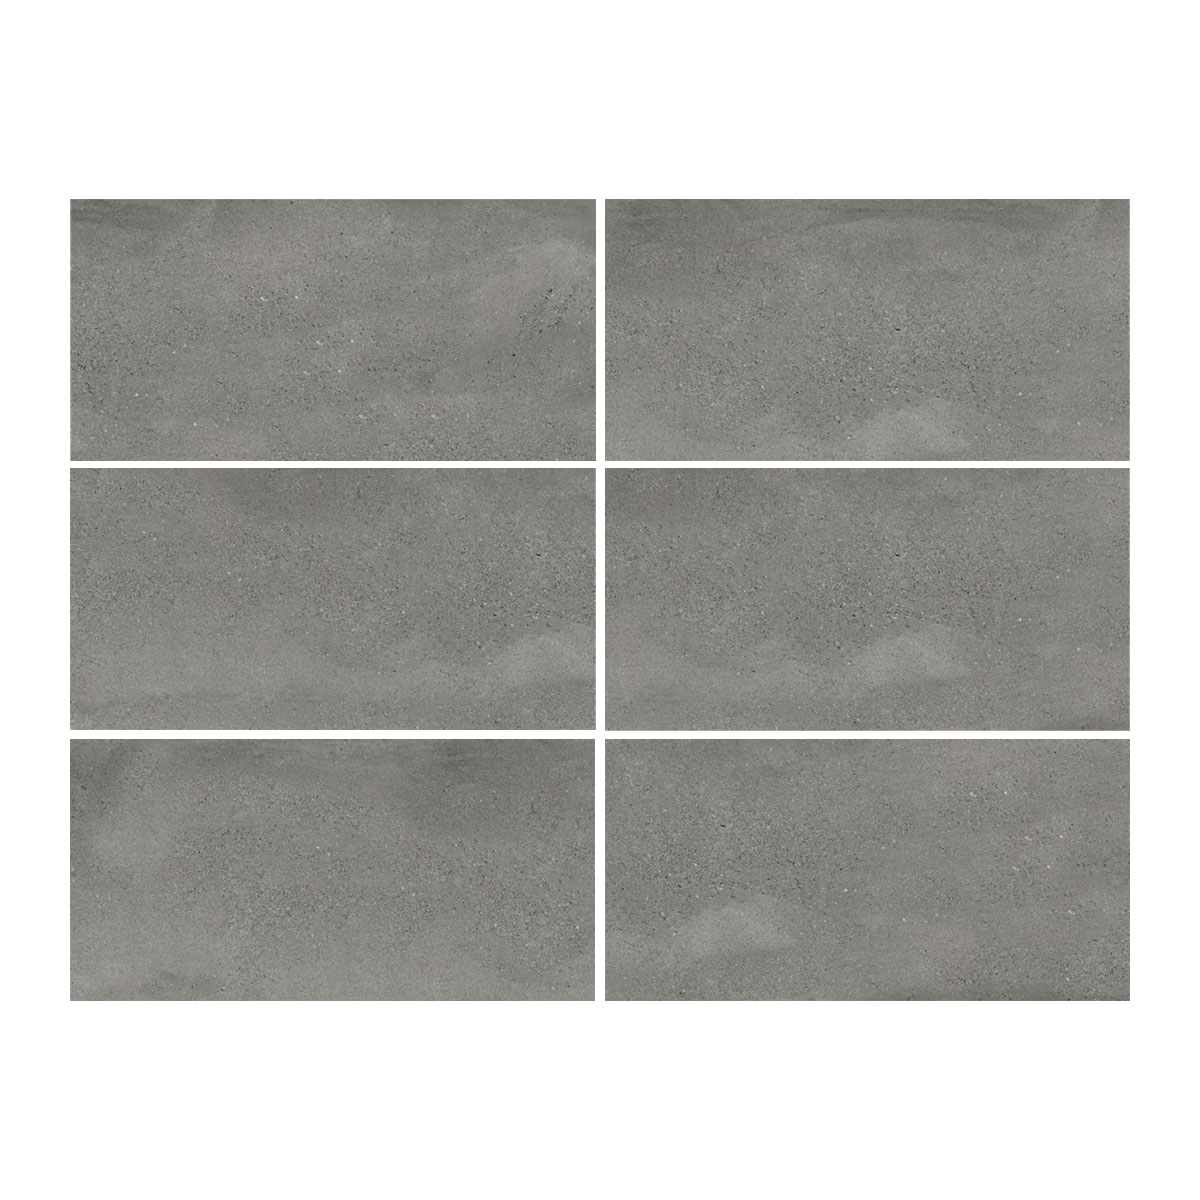 Moonstone - Oyster - Concrete Look Tiles - 300x600mm - Stone3